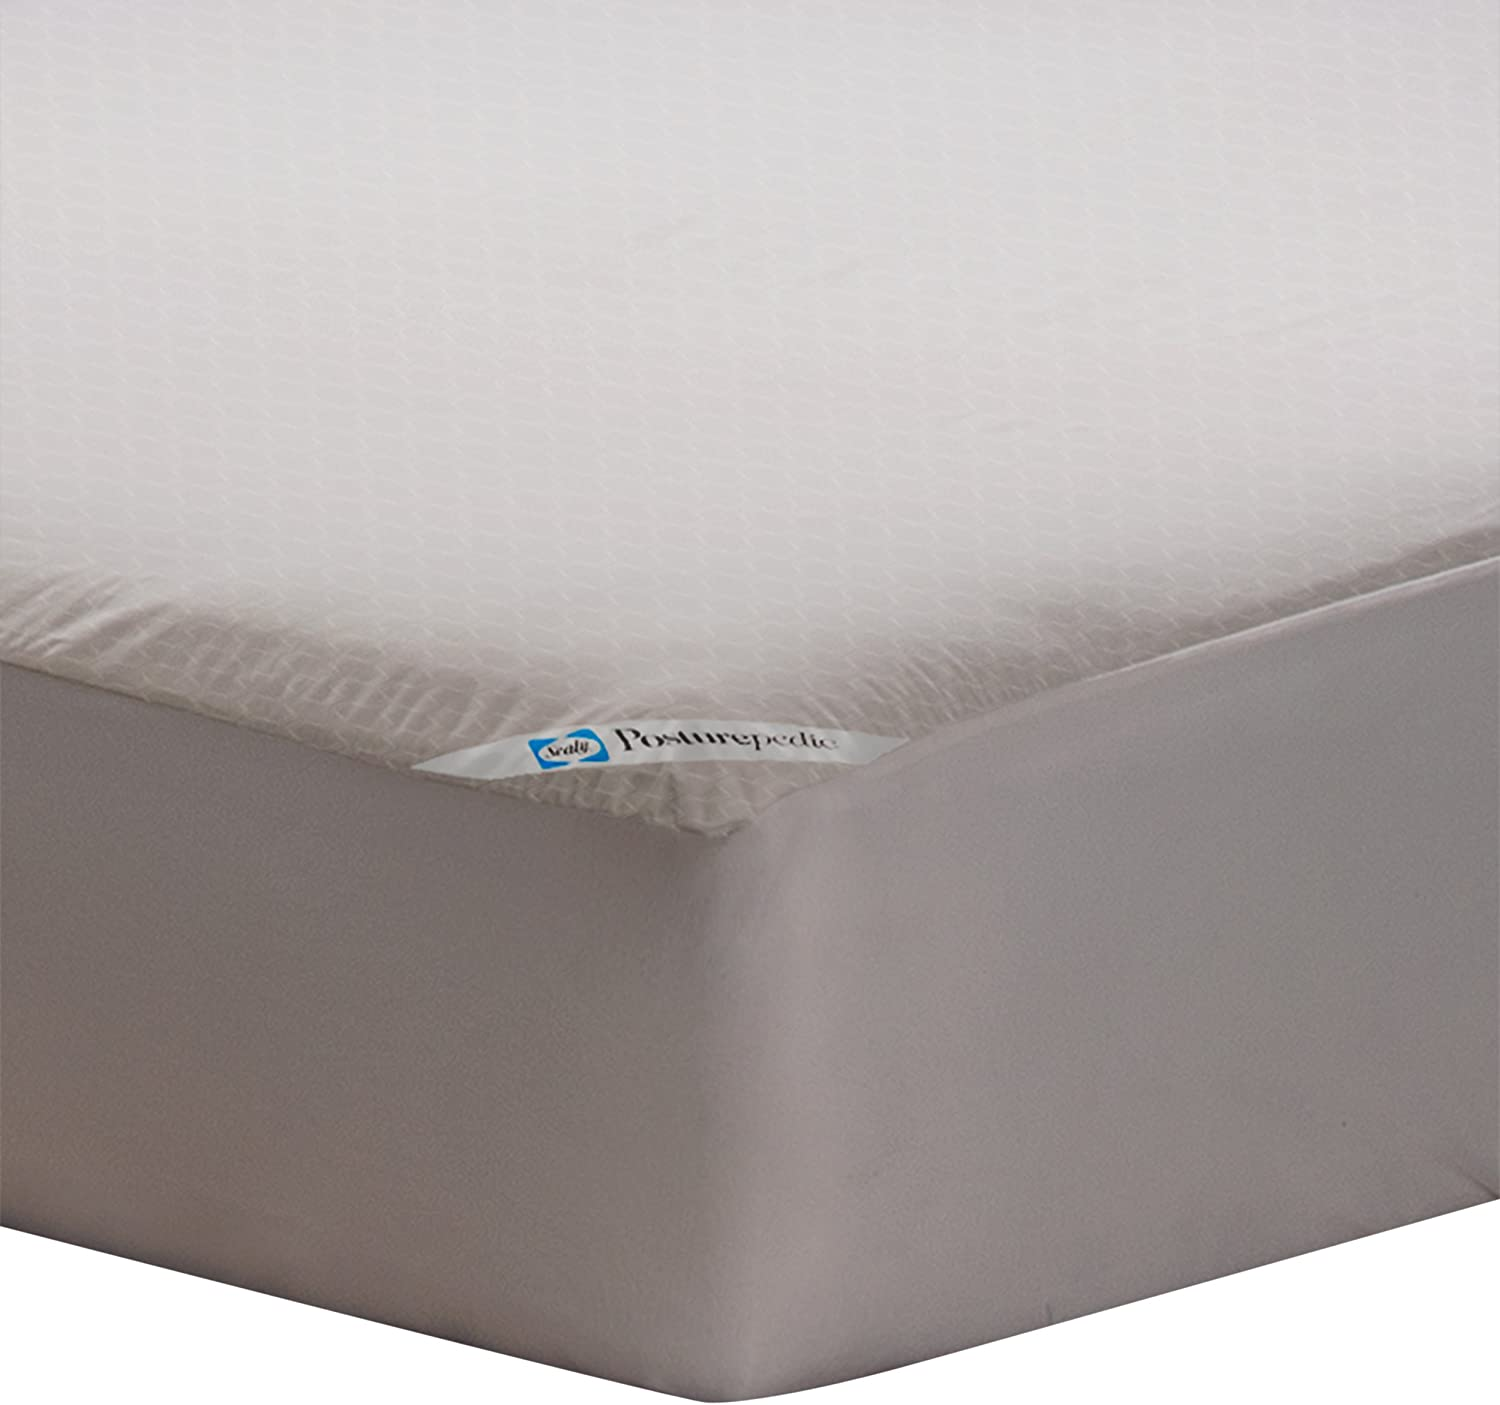 Sealy Posturepedic Allergy Protection Zippered Mattress Protector